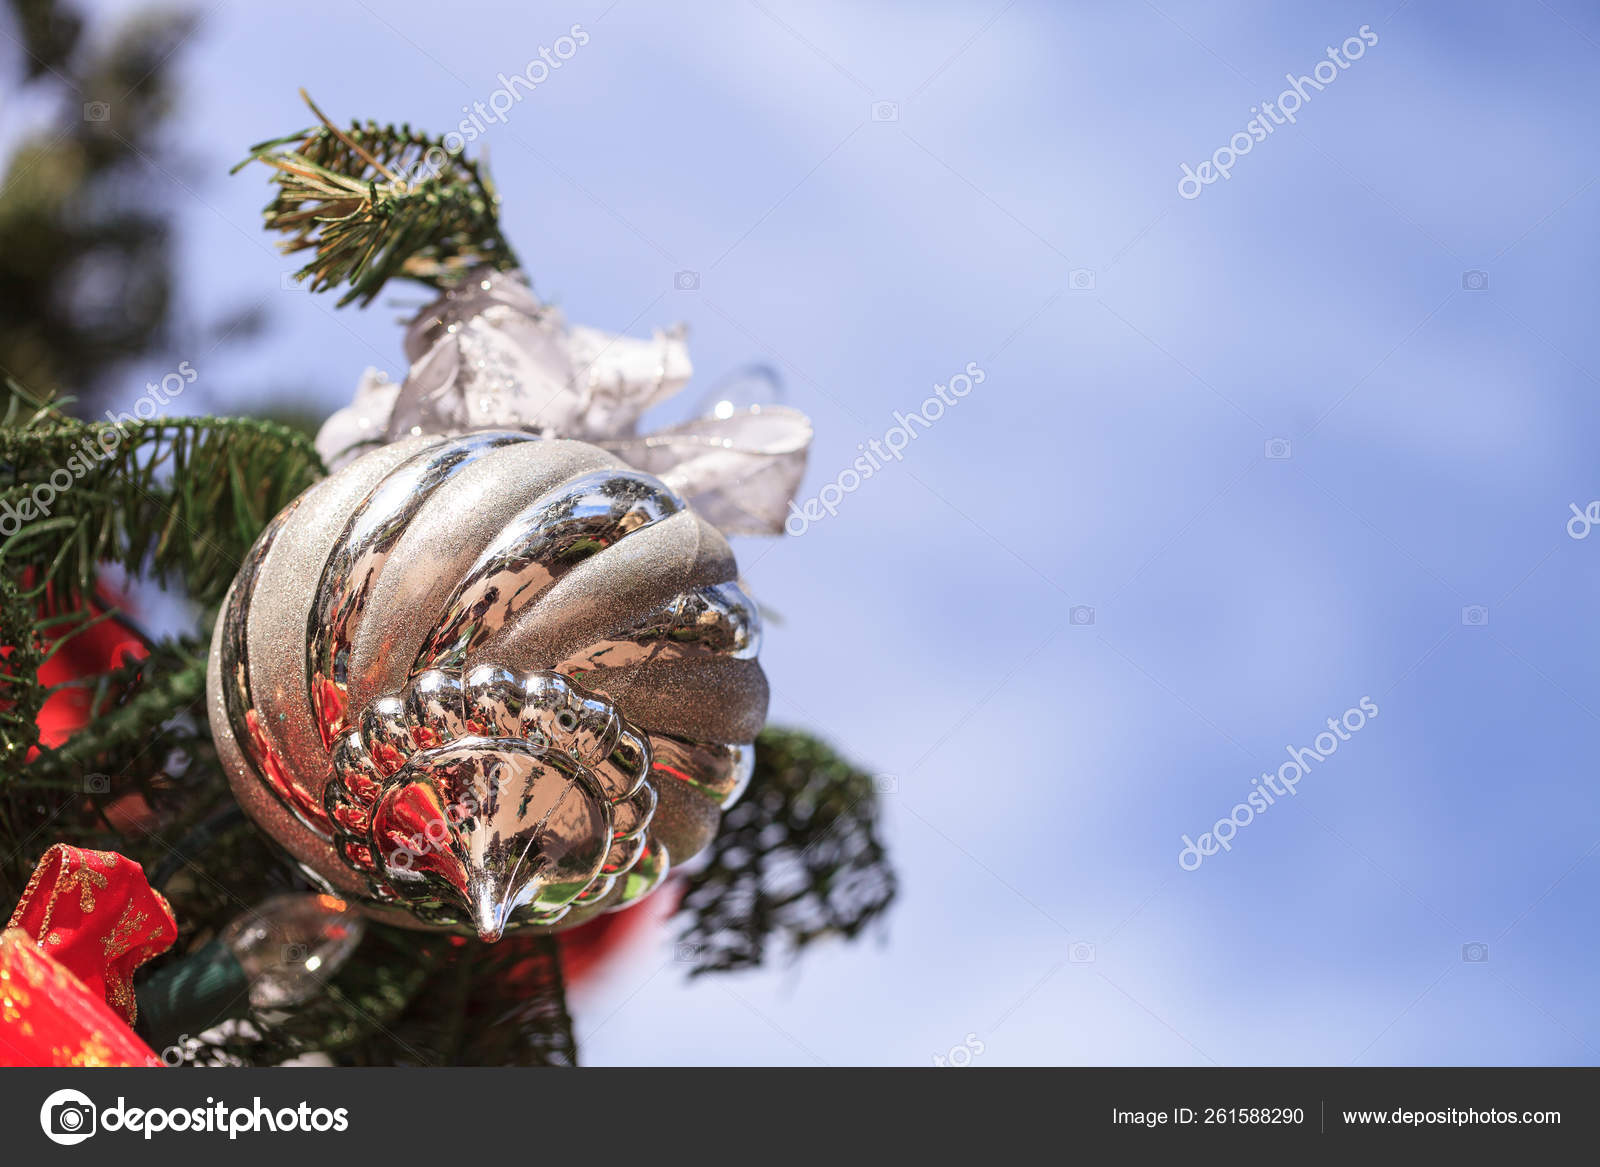 Red Green Gold Silver Christmas Ornaments Hanging Christmas Tree December Stock Photo C Yayimages 261588290